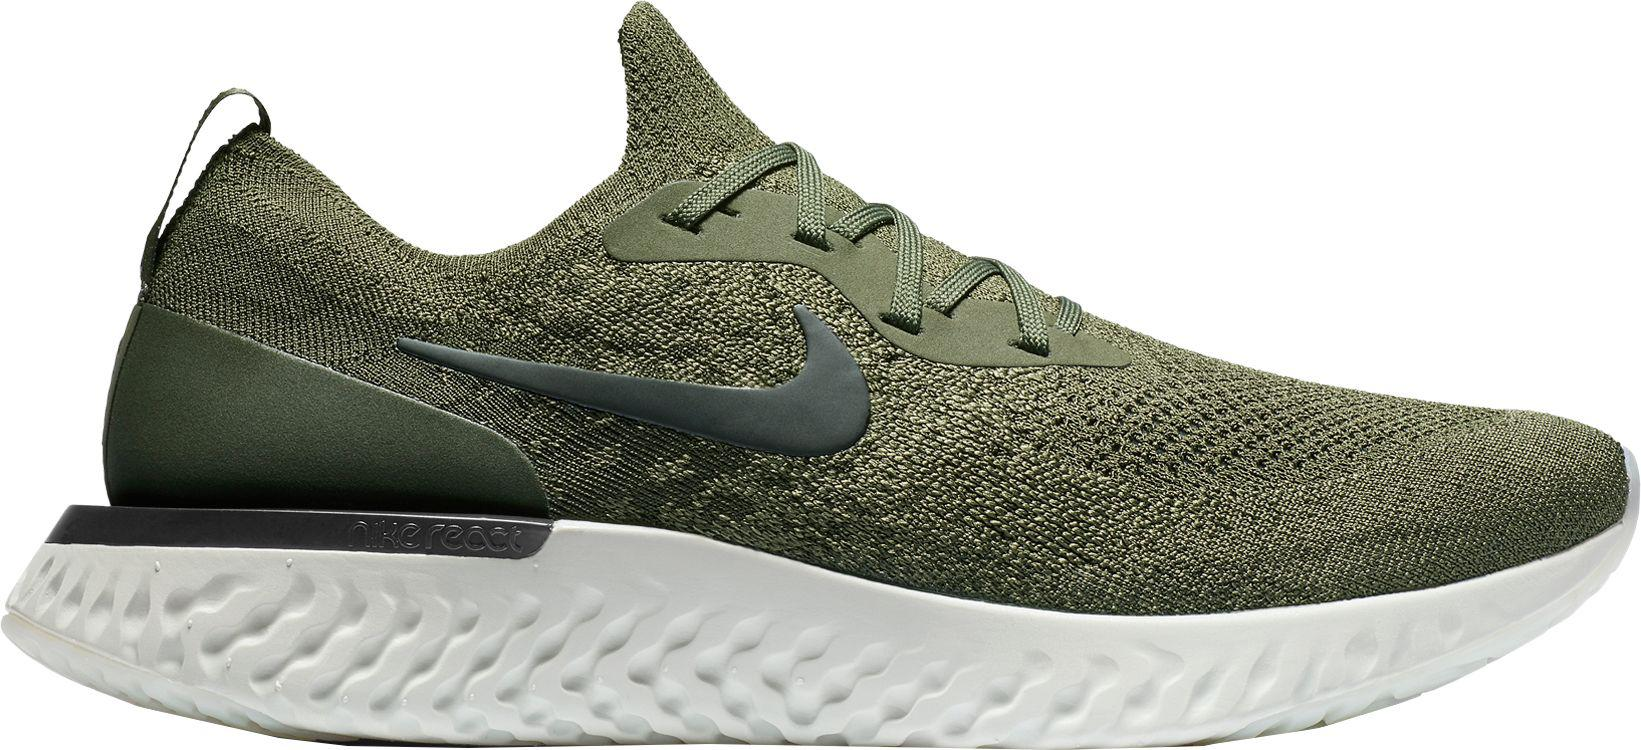 8a52c14390cc Nike - Multicolor Epic React Flyknit Running Shoes for Men - Lyst